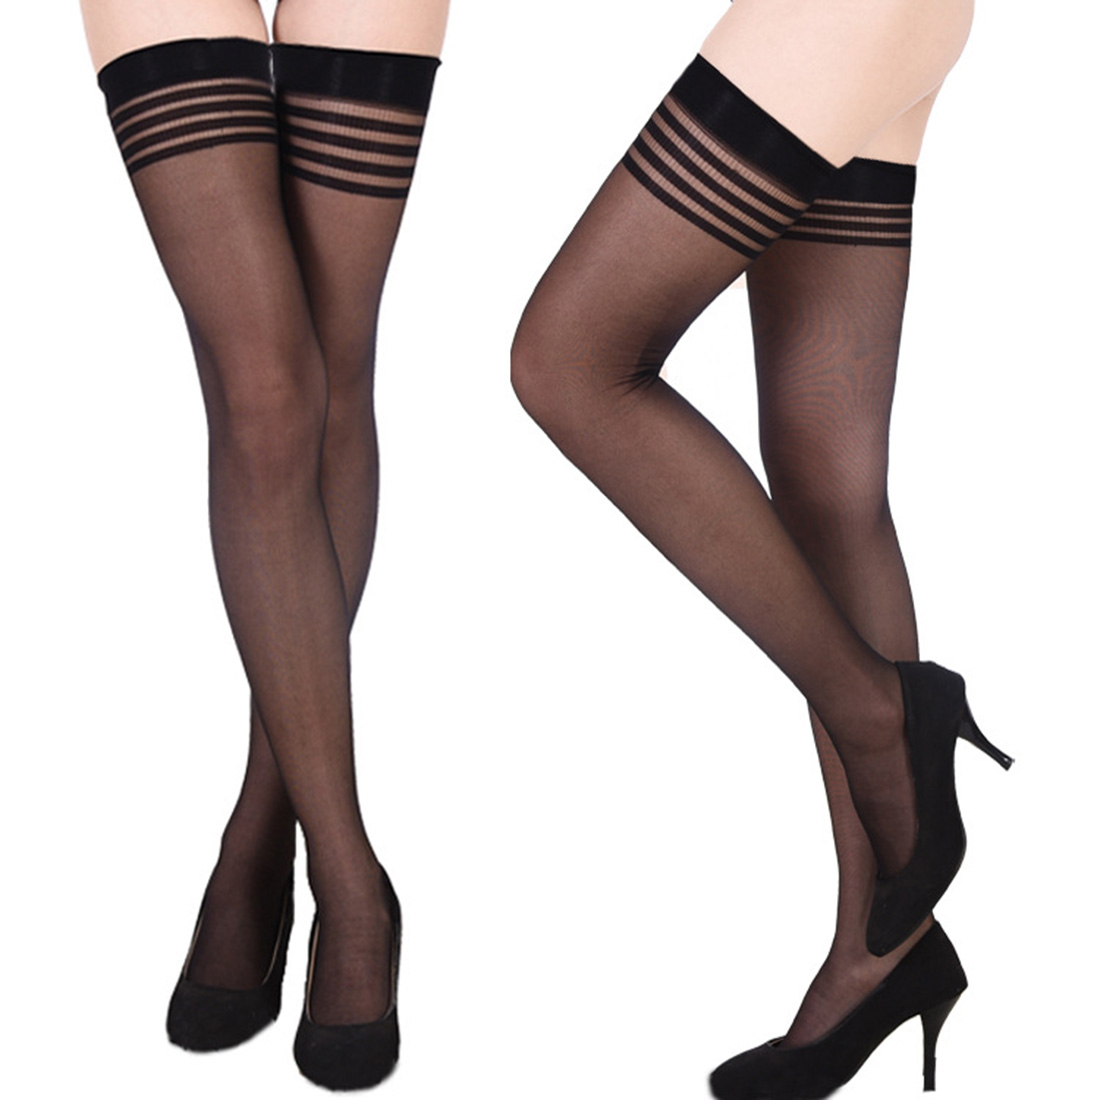 1 Pc Women Transparent Black Lace Stay Up Tights Pantyhose Thigh-Highs Knee Temptation Stretch Stockings For Nightclubs